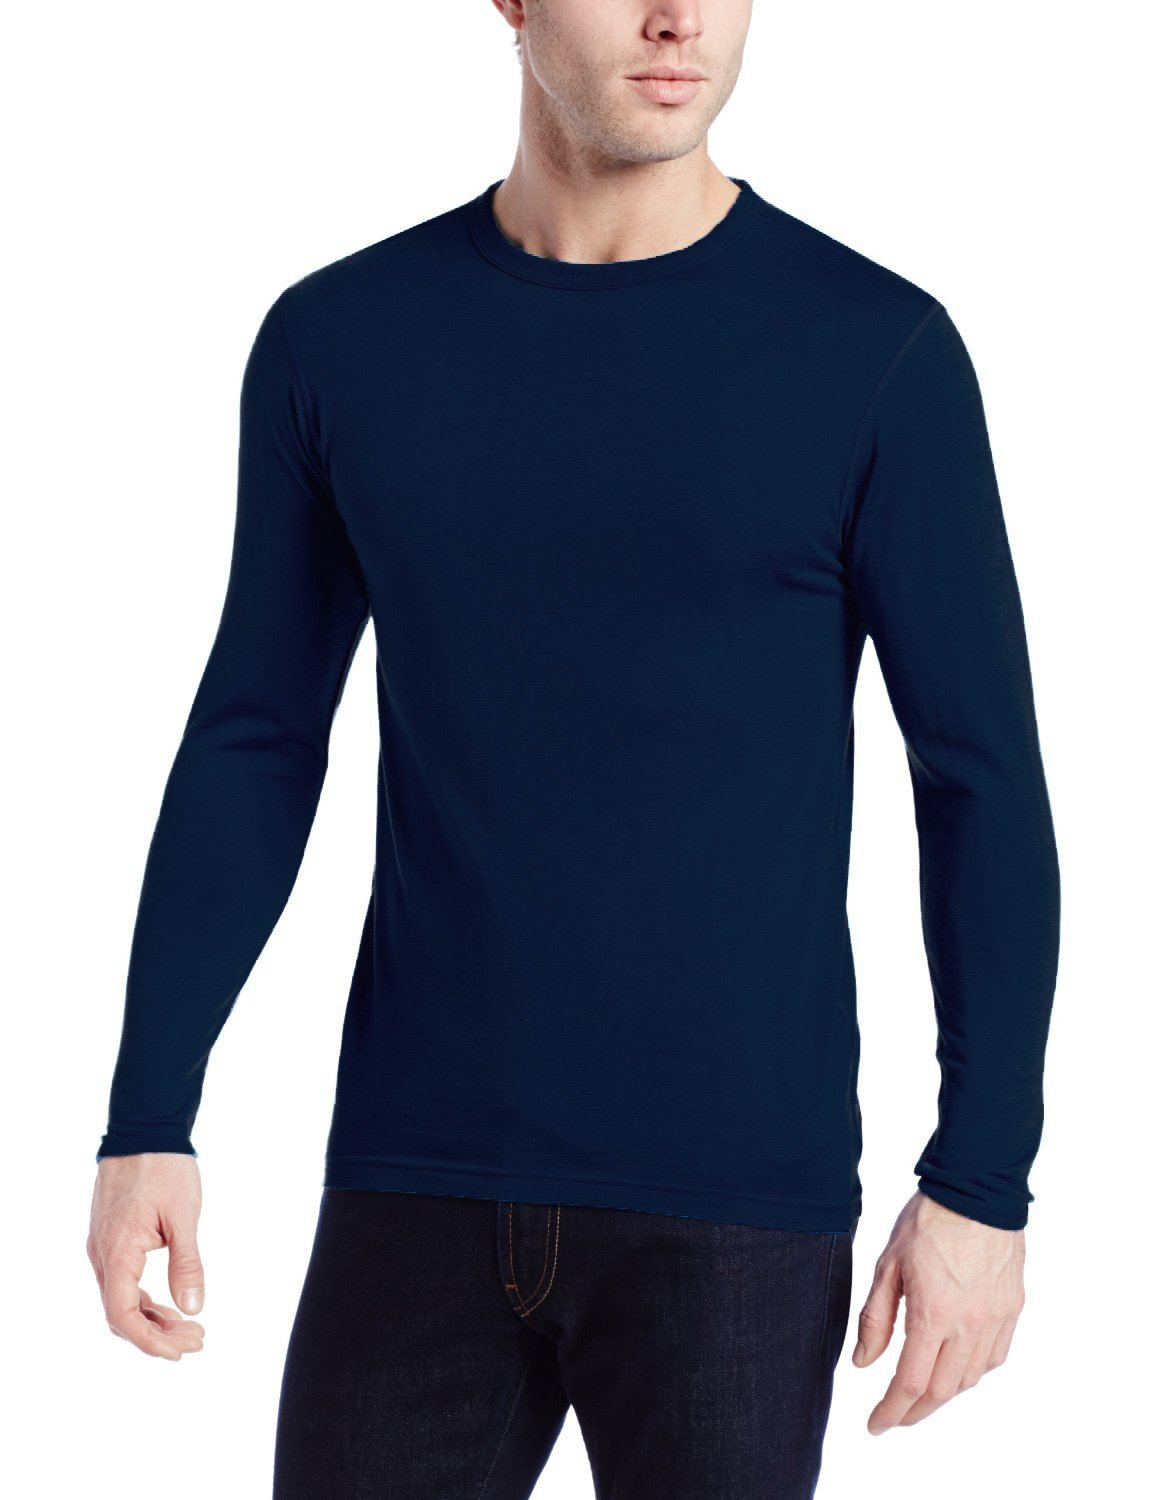 Minus33 Merino Wool Men's Ticonderoga Lightweight Crew 718